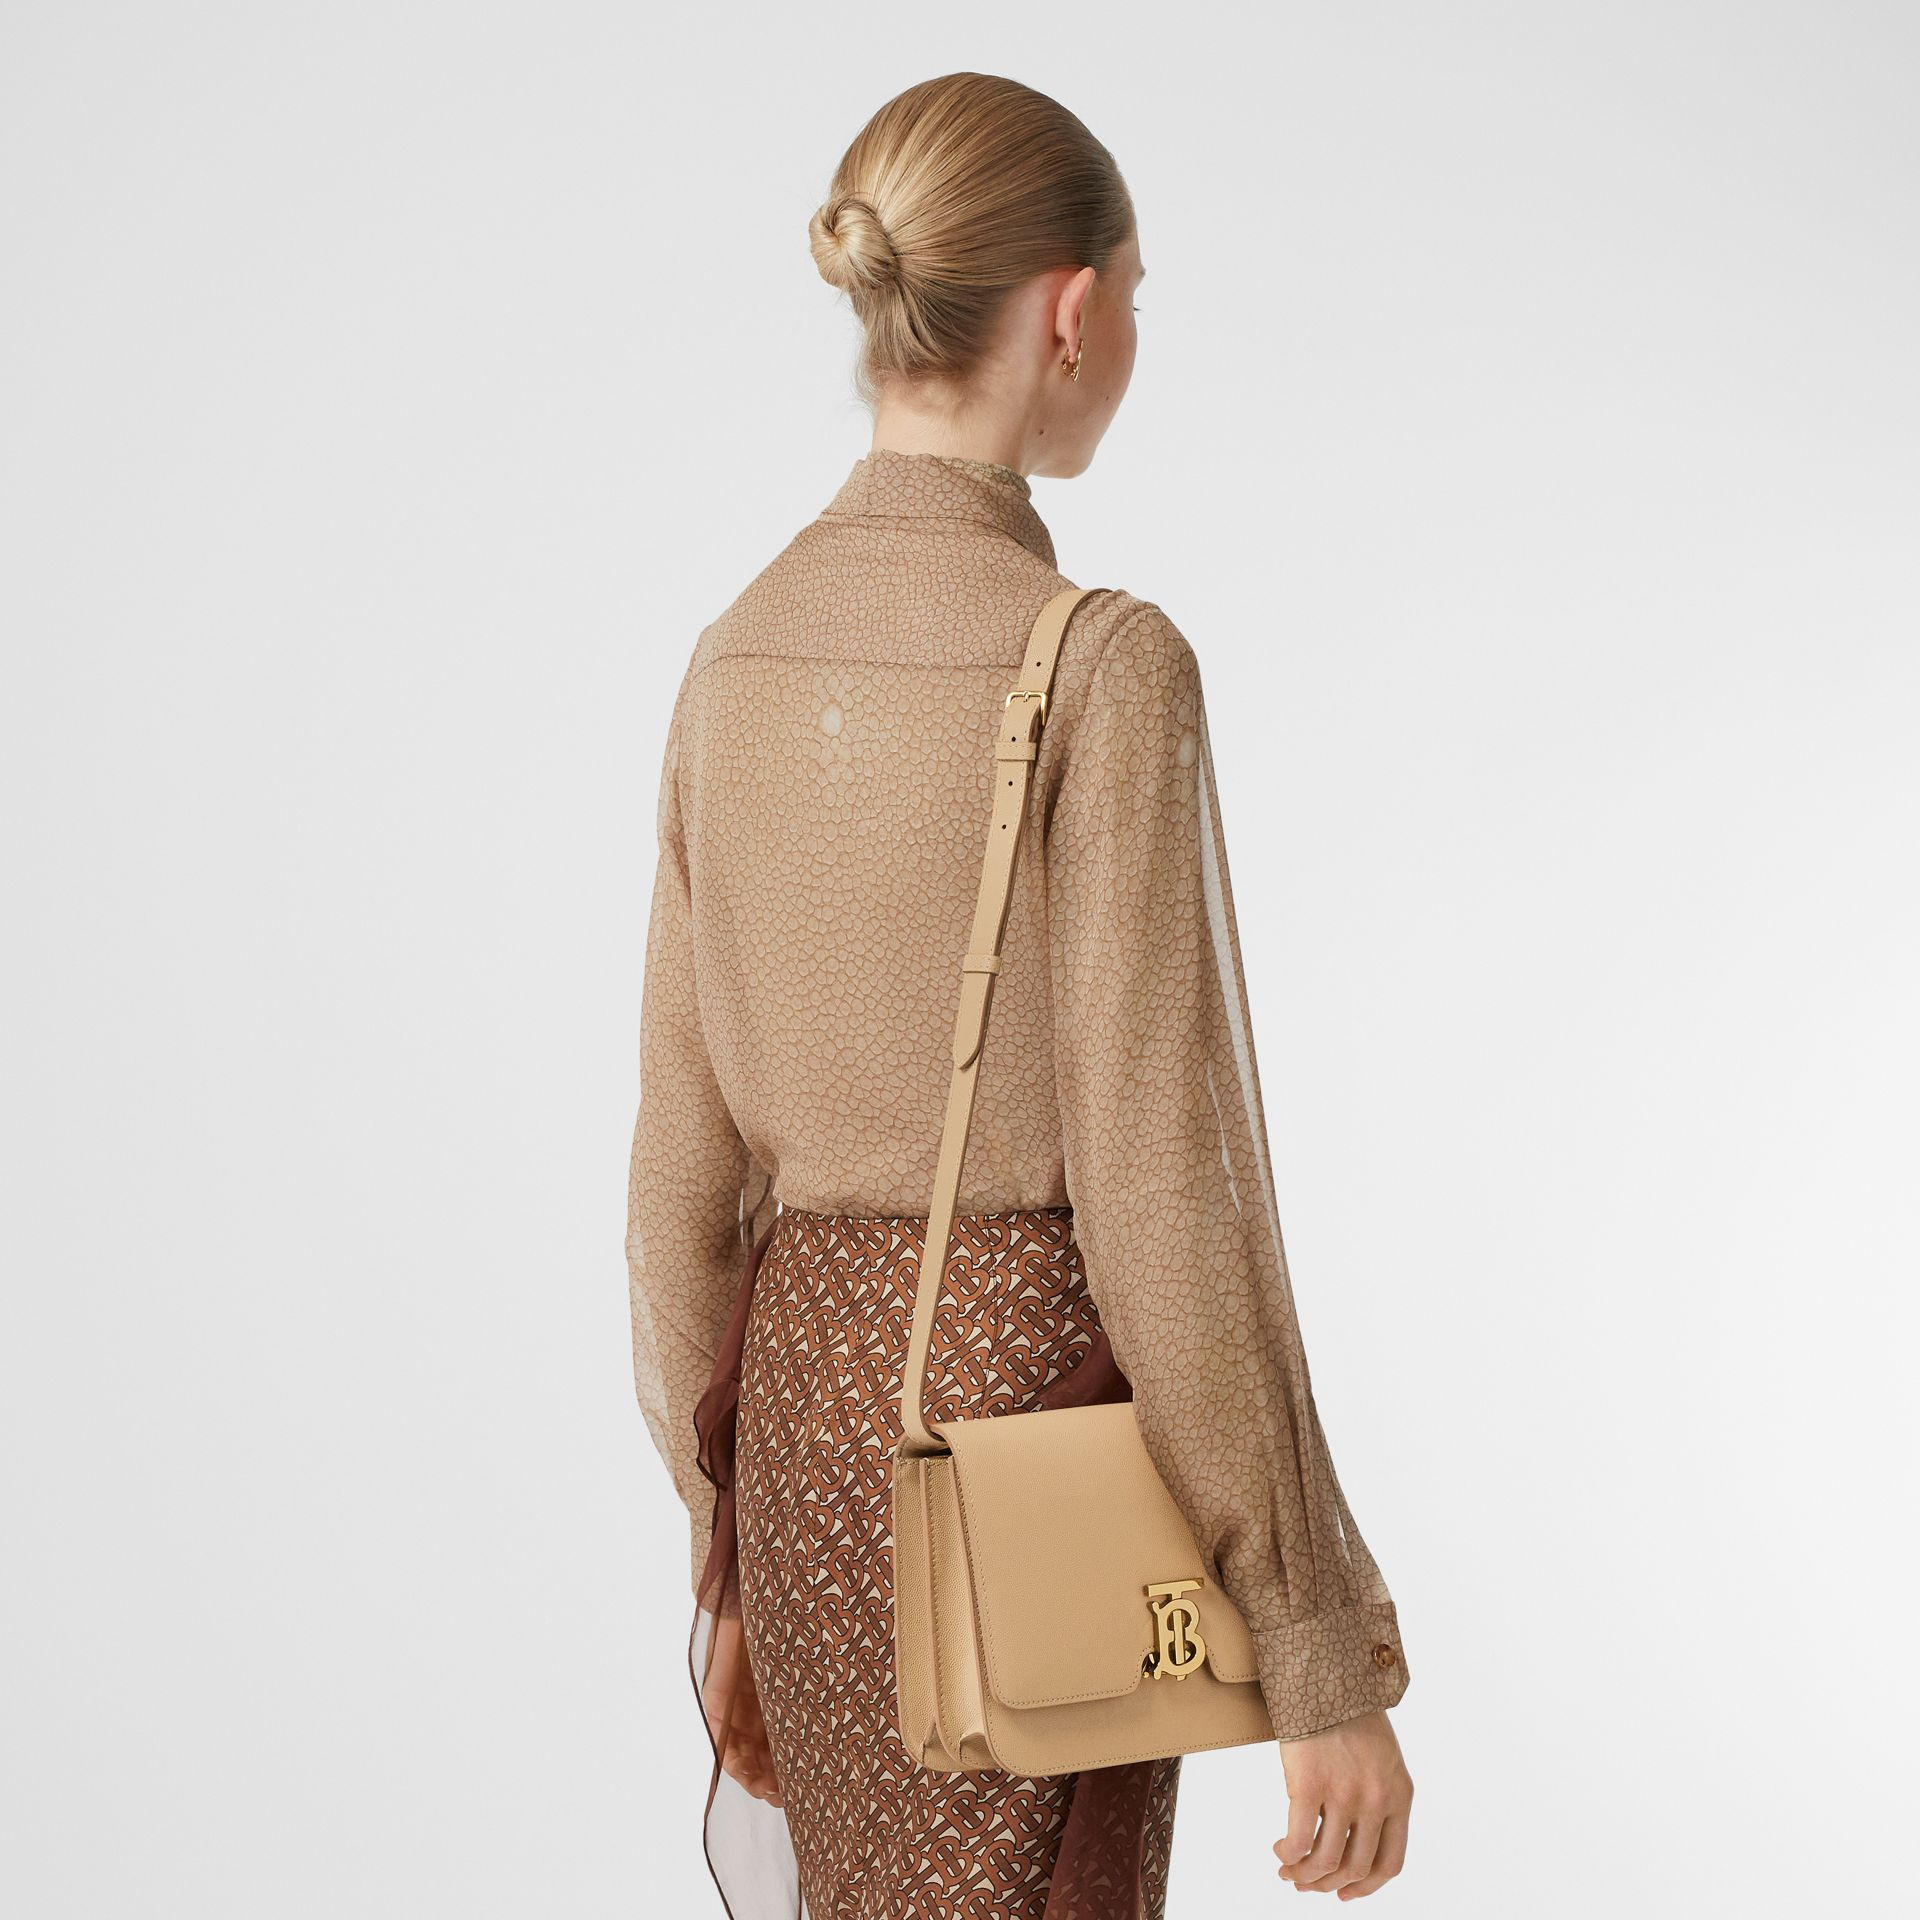 Medium Grainy Leather TB Bag in Archive Beige - Women | Burberry Australia - gallery image 2